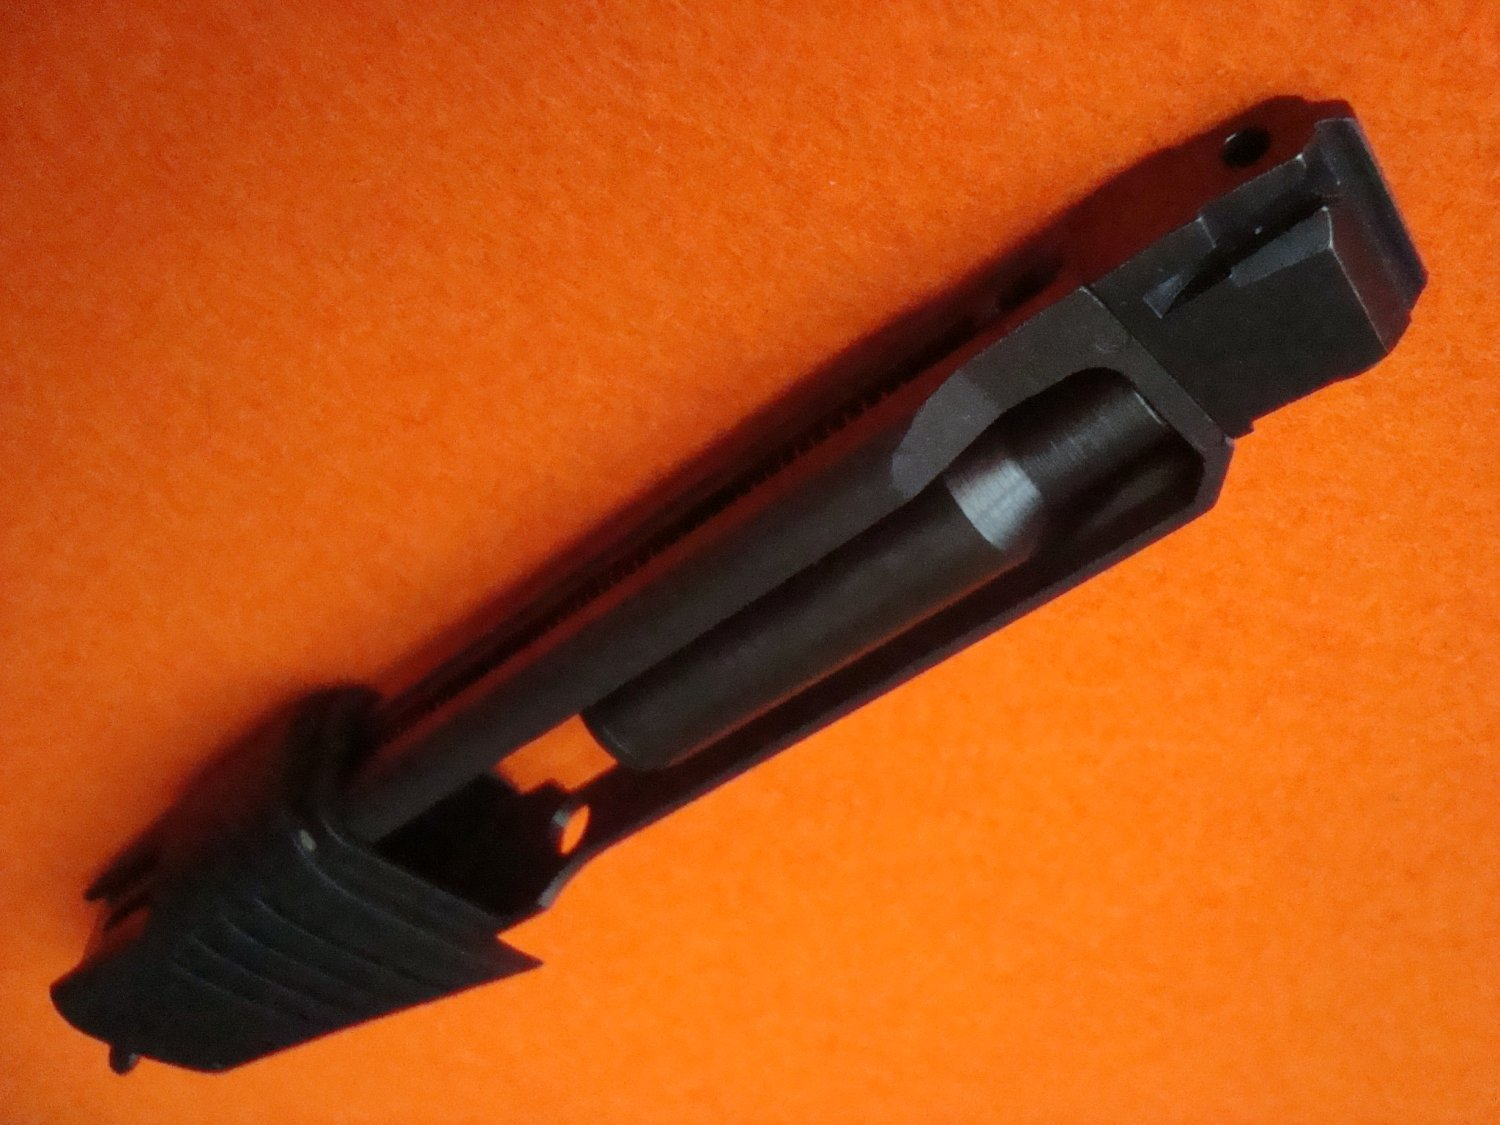 MP-661K Drozd magazine with upgraded parts for maximum performance, modernized parts made to order.